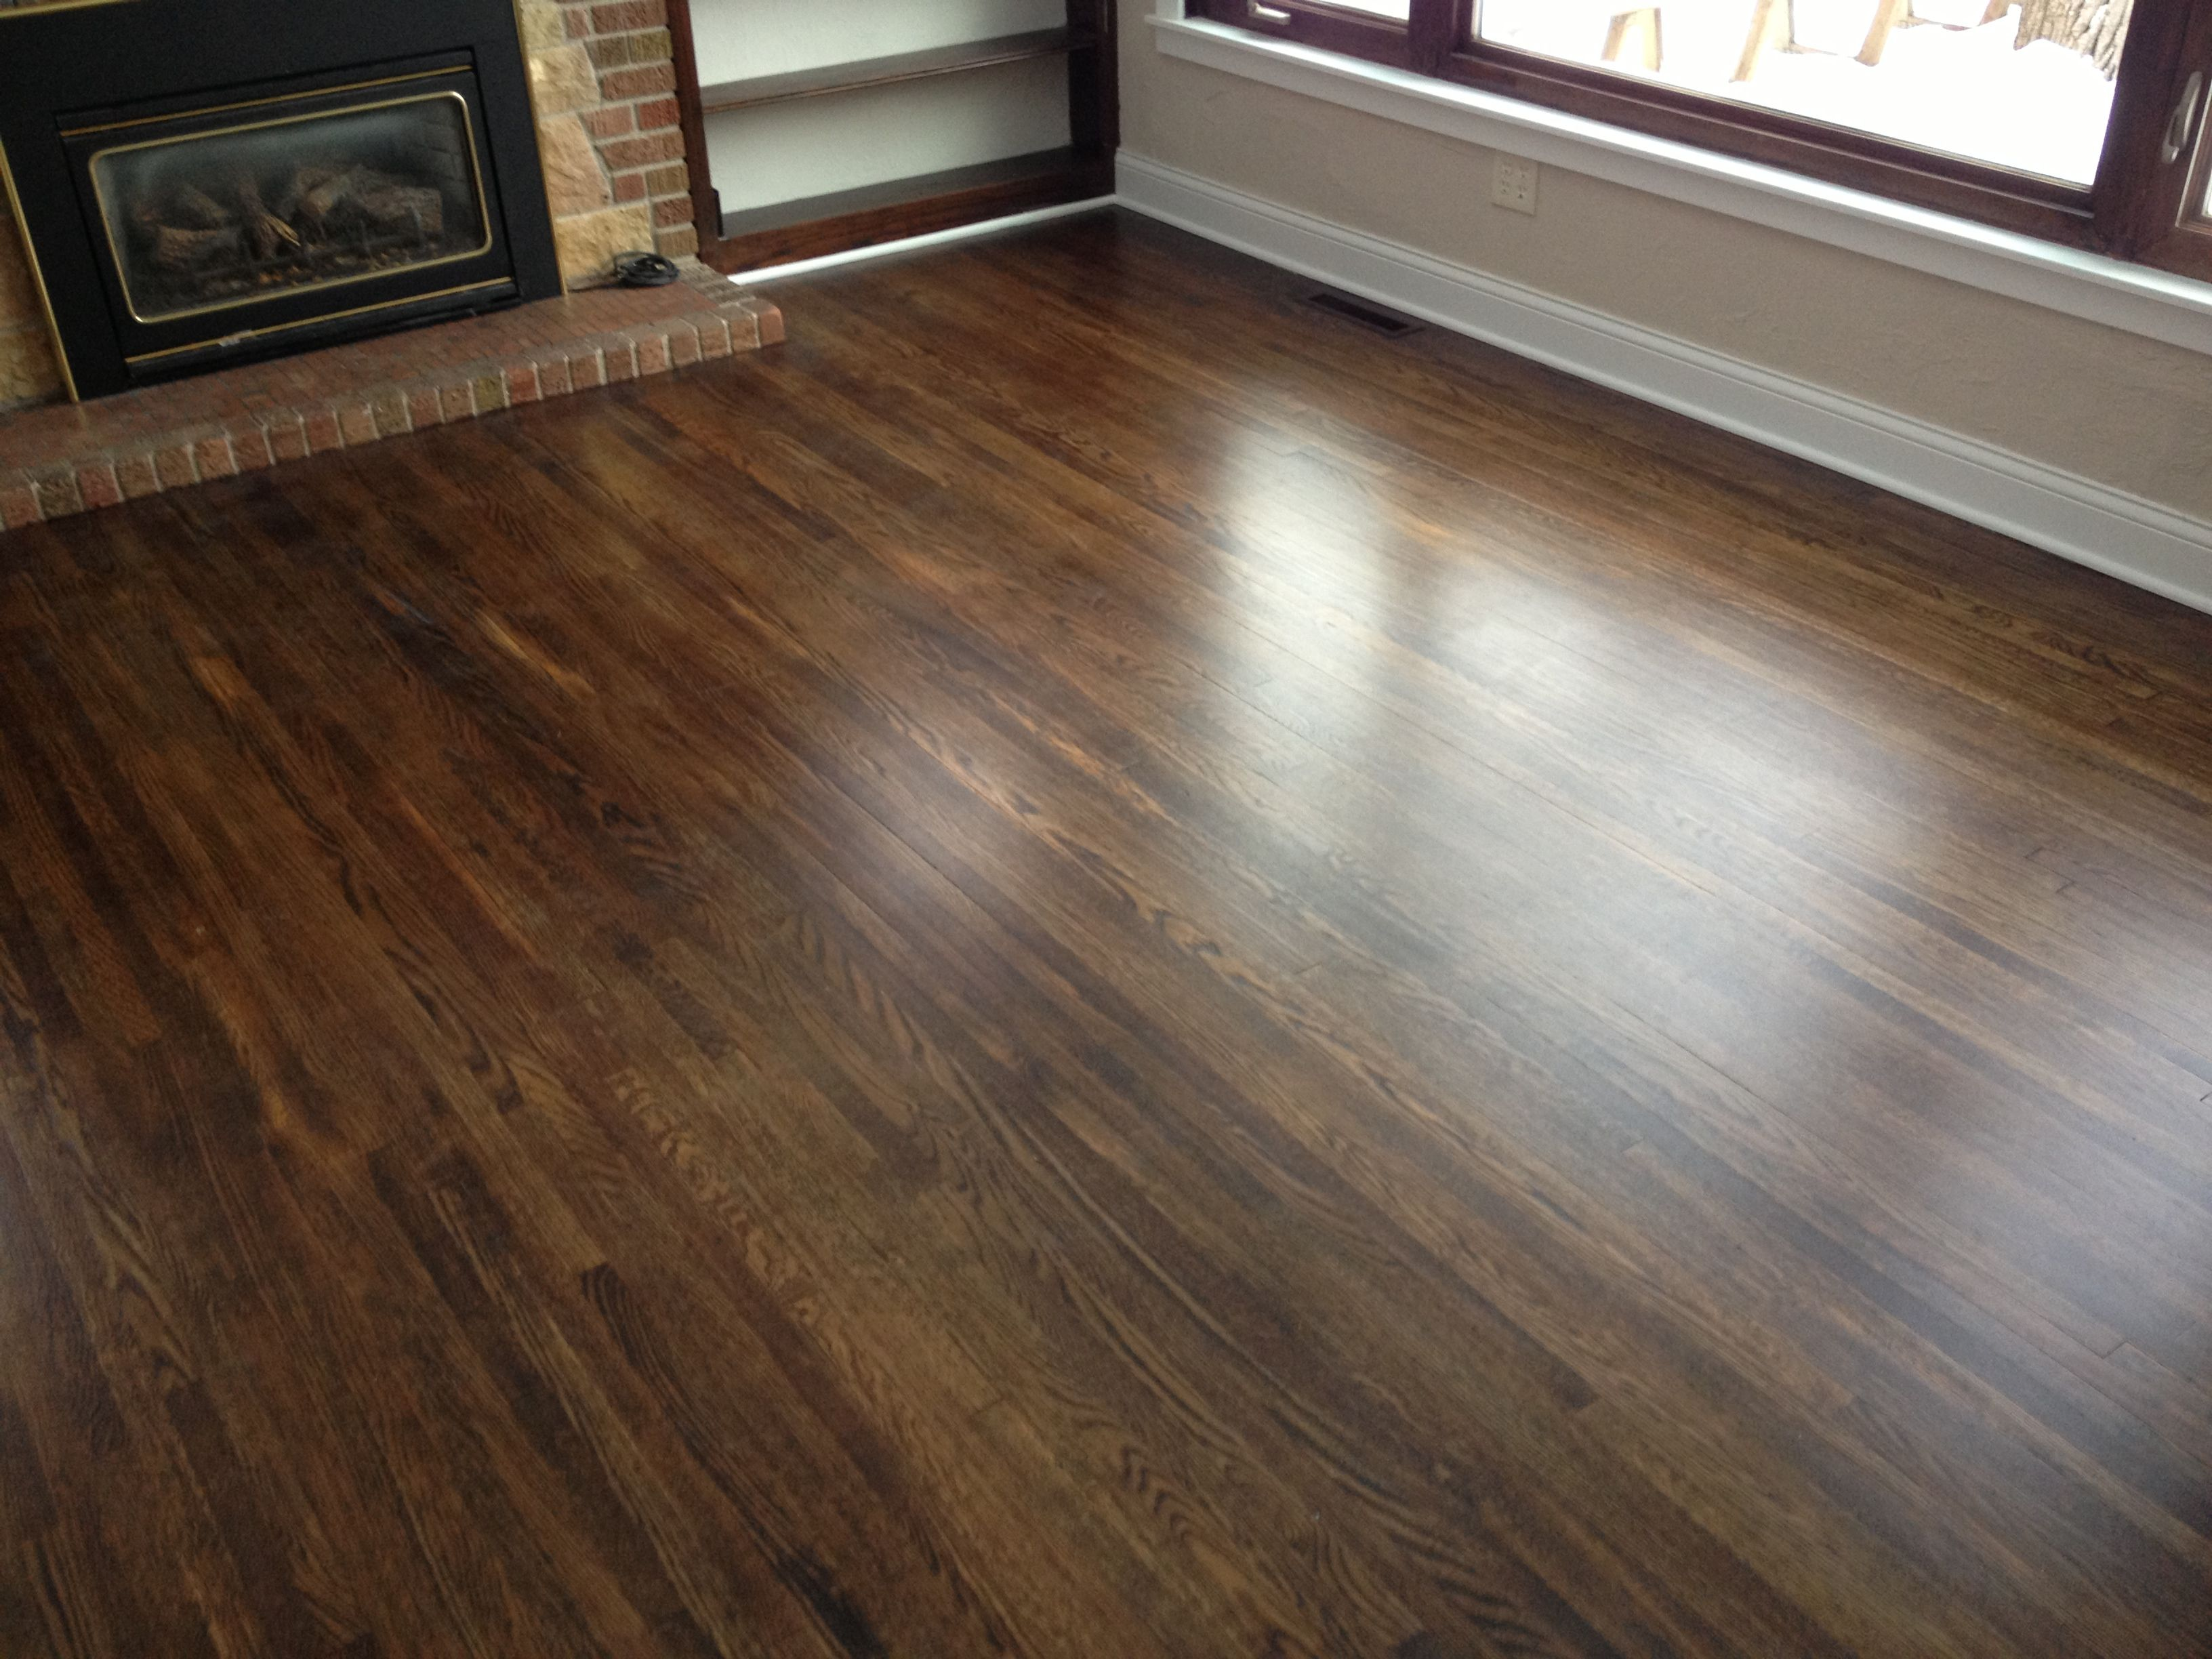 Walnut hardwood floor stain gurus floor for Staining hardwood floors